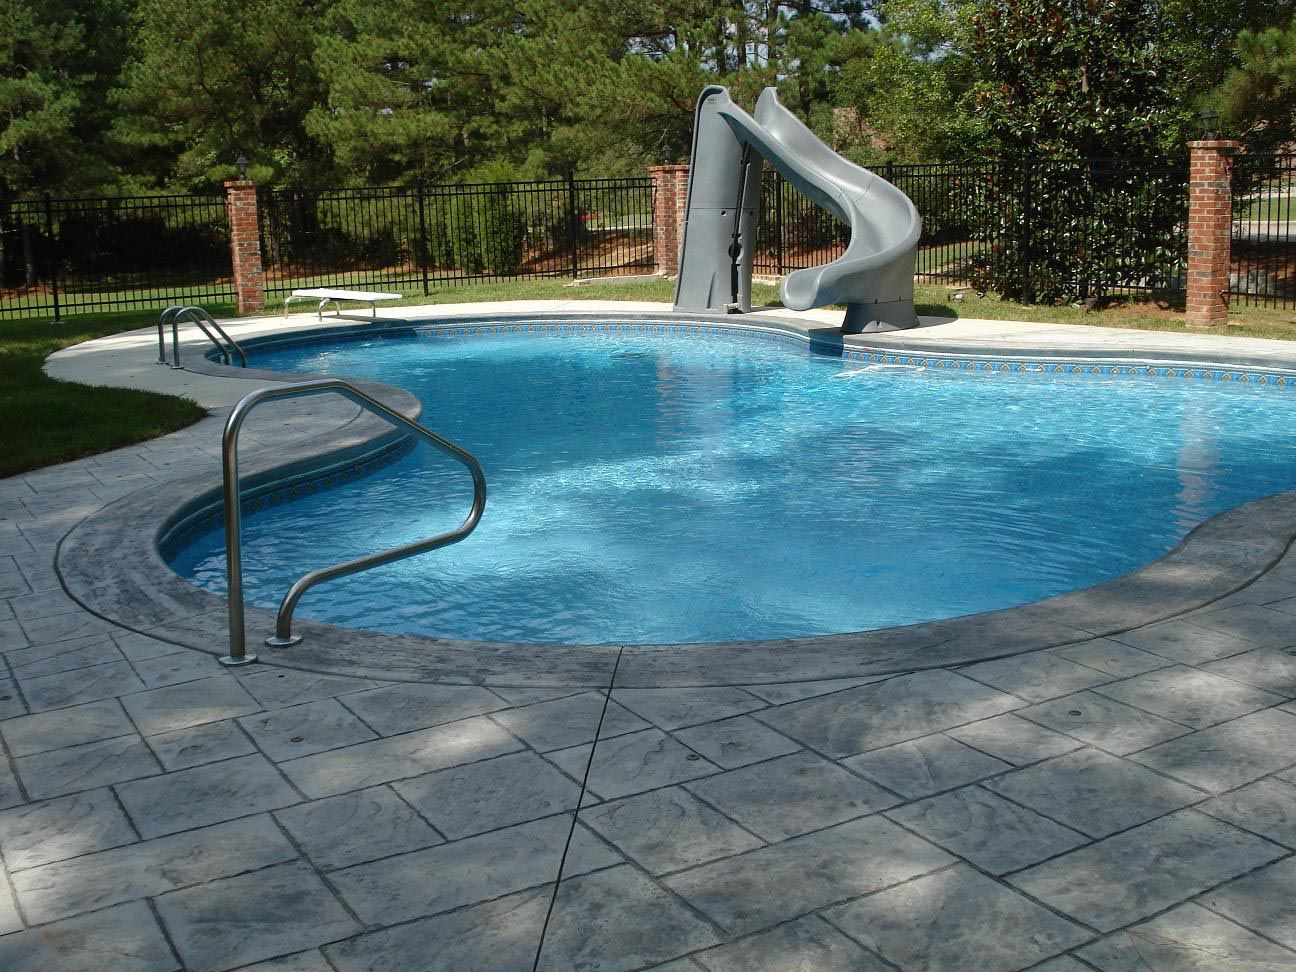 Water Slides For Home Pools Backyard Pool Landscaping Swimming